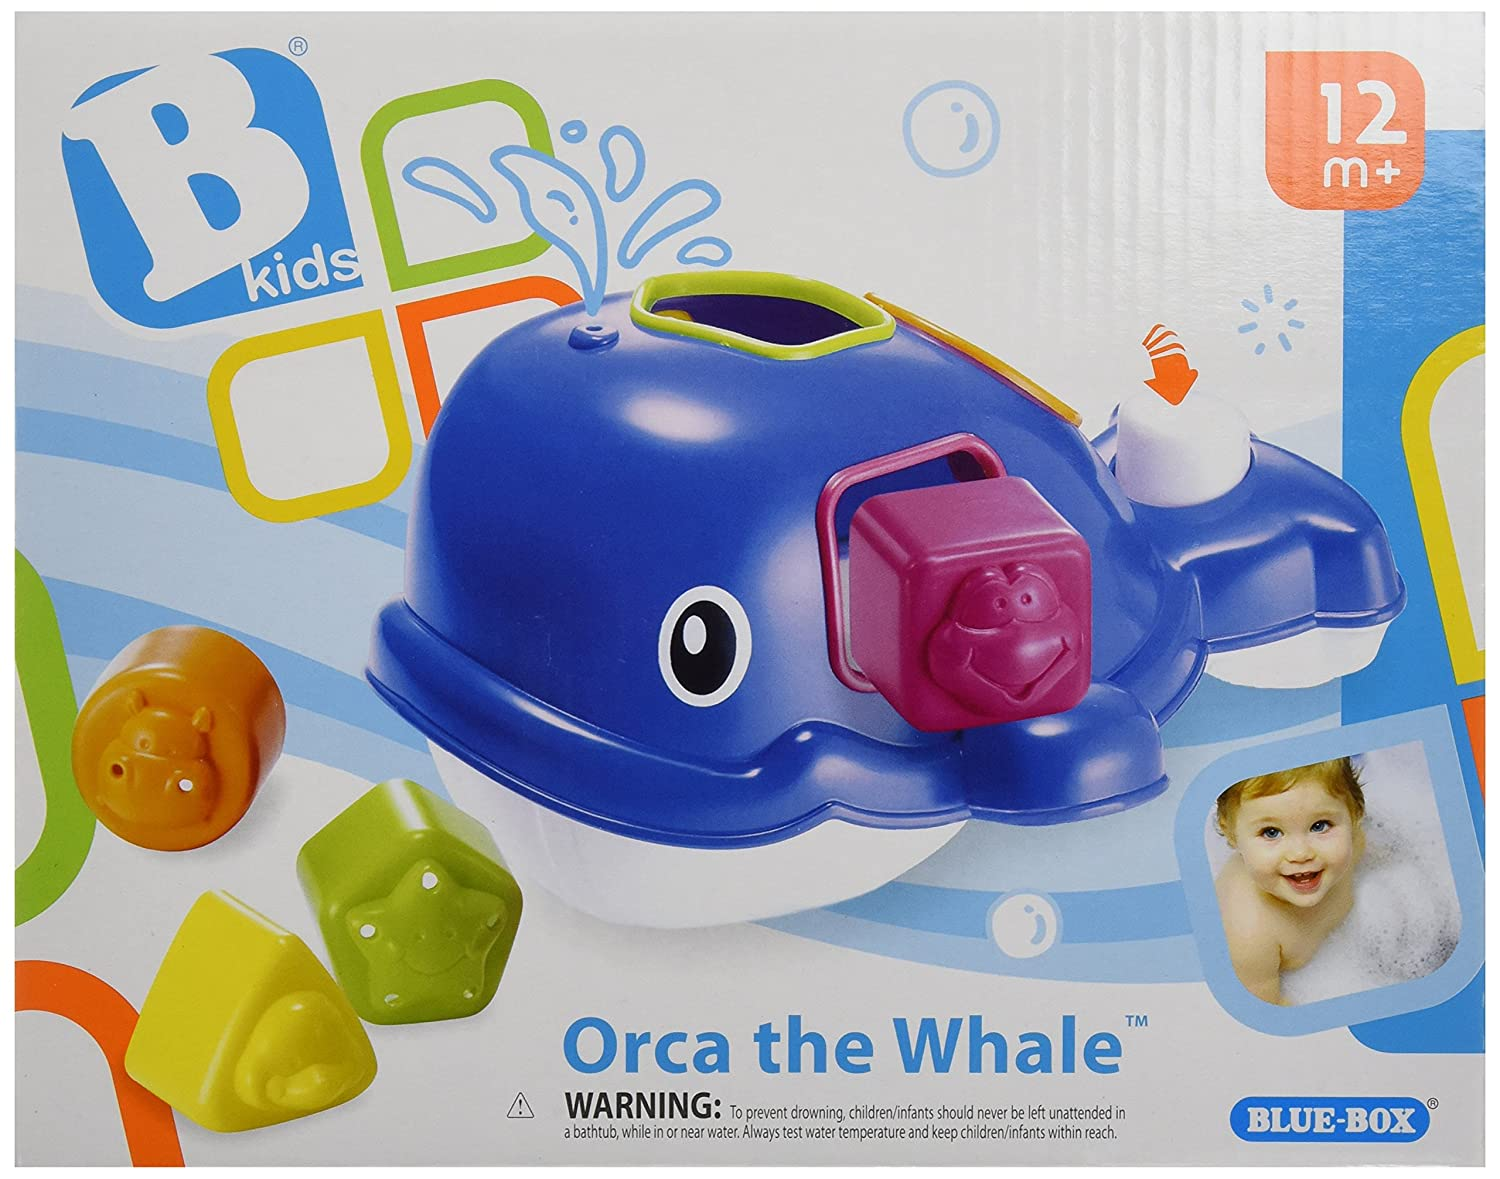 Amazon.com : B kids Orca the Whale Bathtub Toy (Discontinued by ...